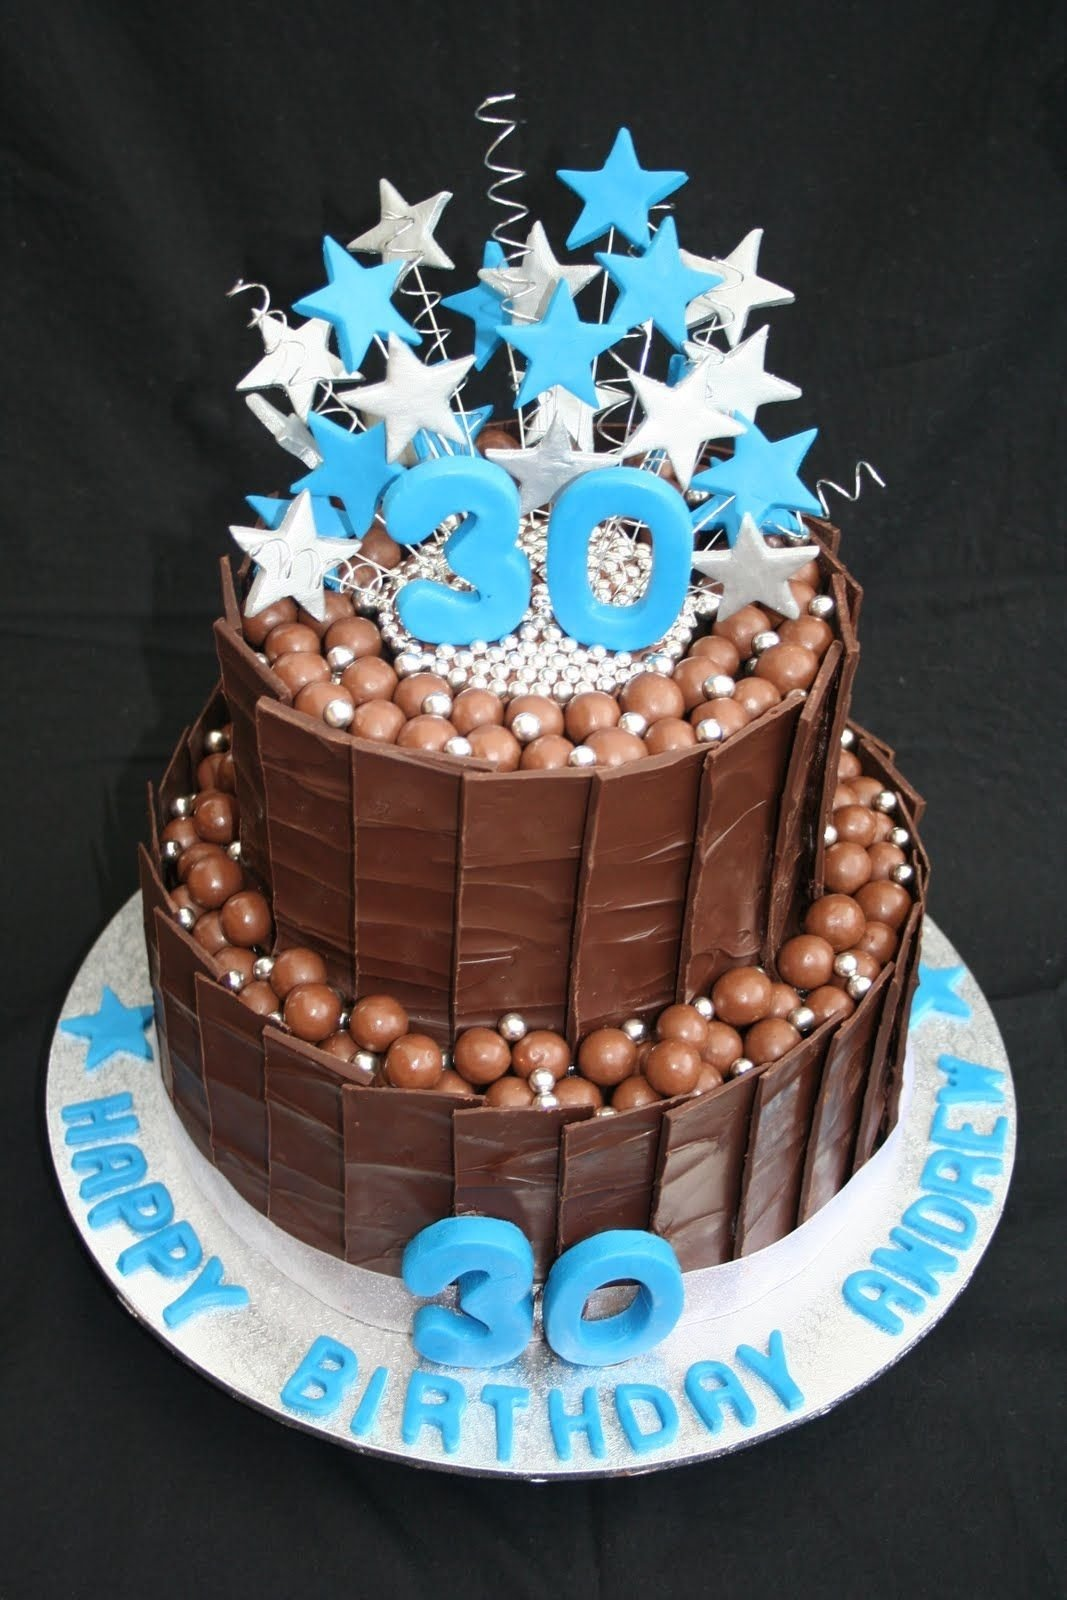 10 Gorgeous Cake Decorating Ideas For Men 30th birthday cakes leonies cakes and parties 30th 2 2020